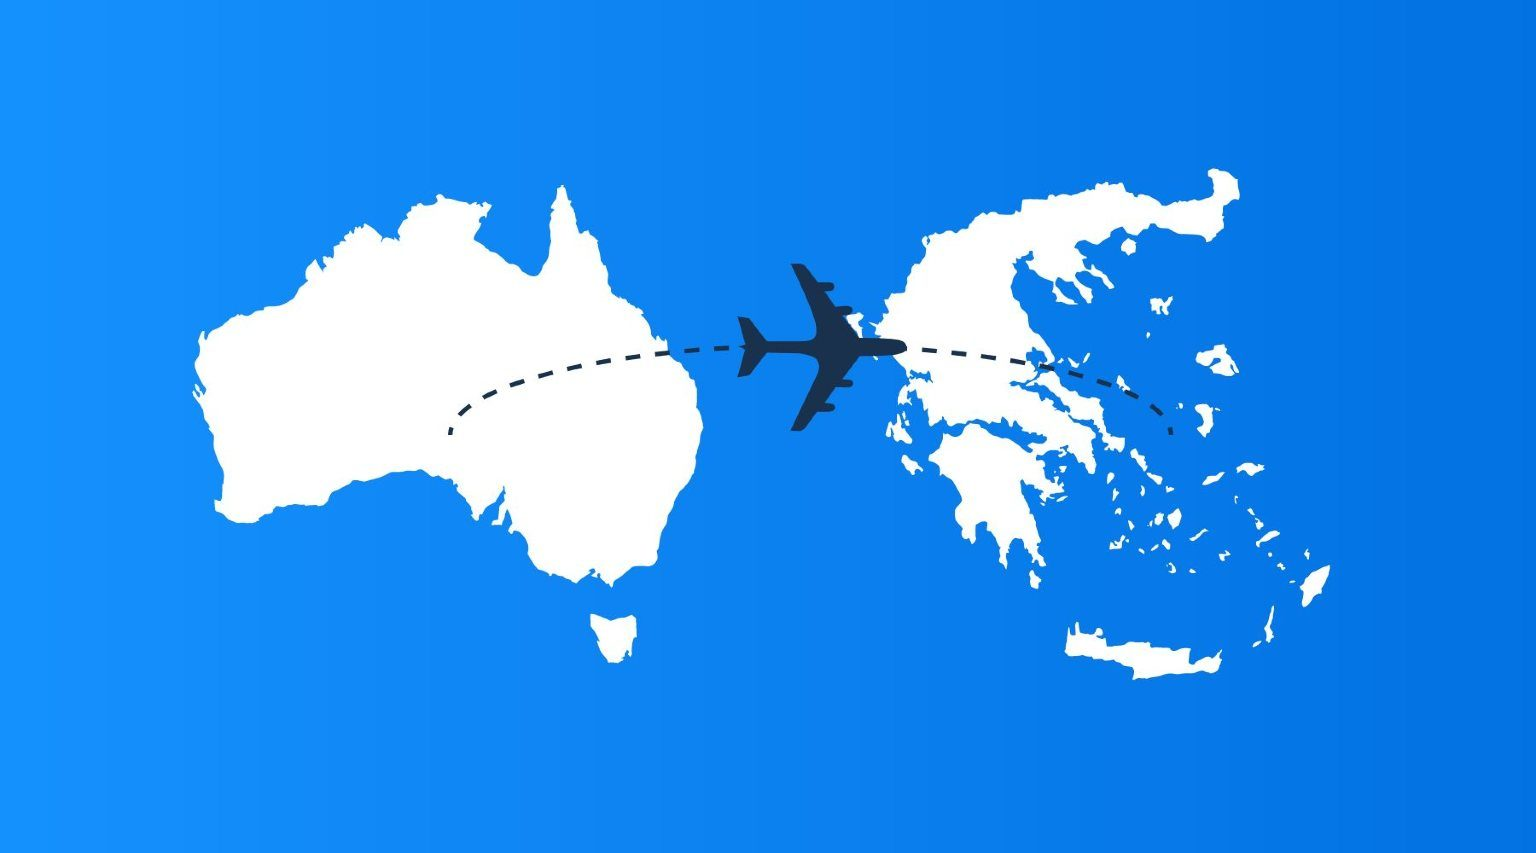 From Australia to Greece map